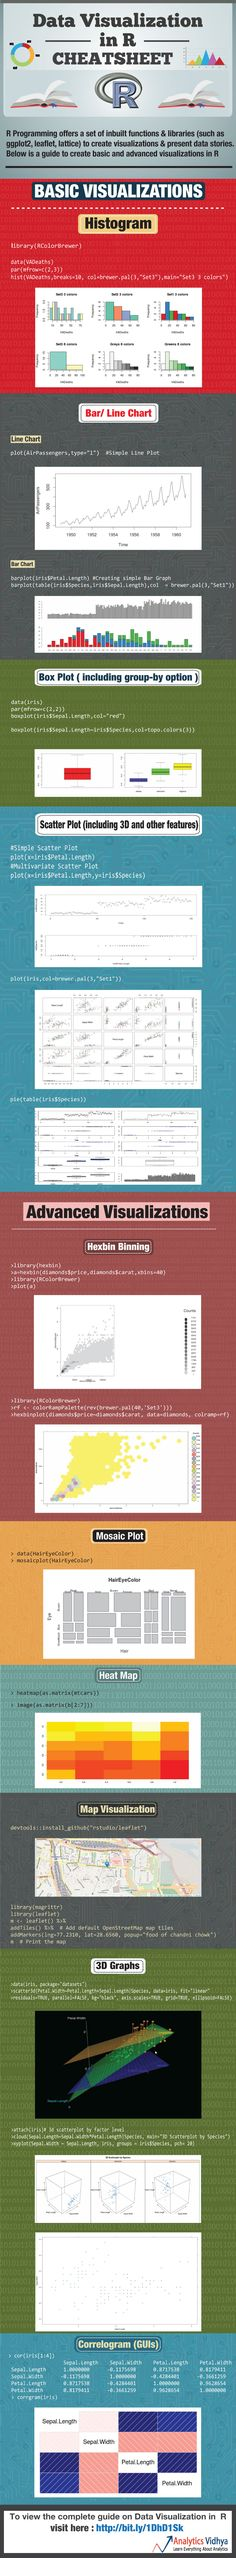 Comprehensive-Guide-to-Data-Visualization-in--R-------FINAL---- (1)